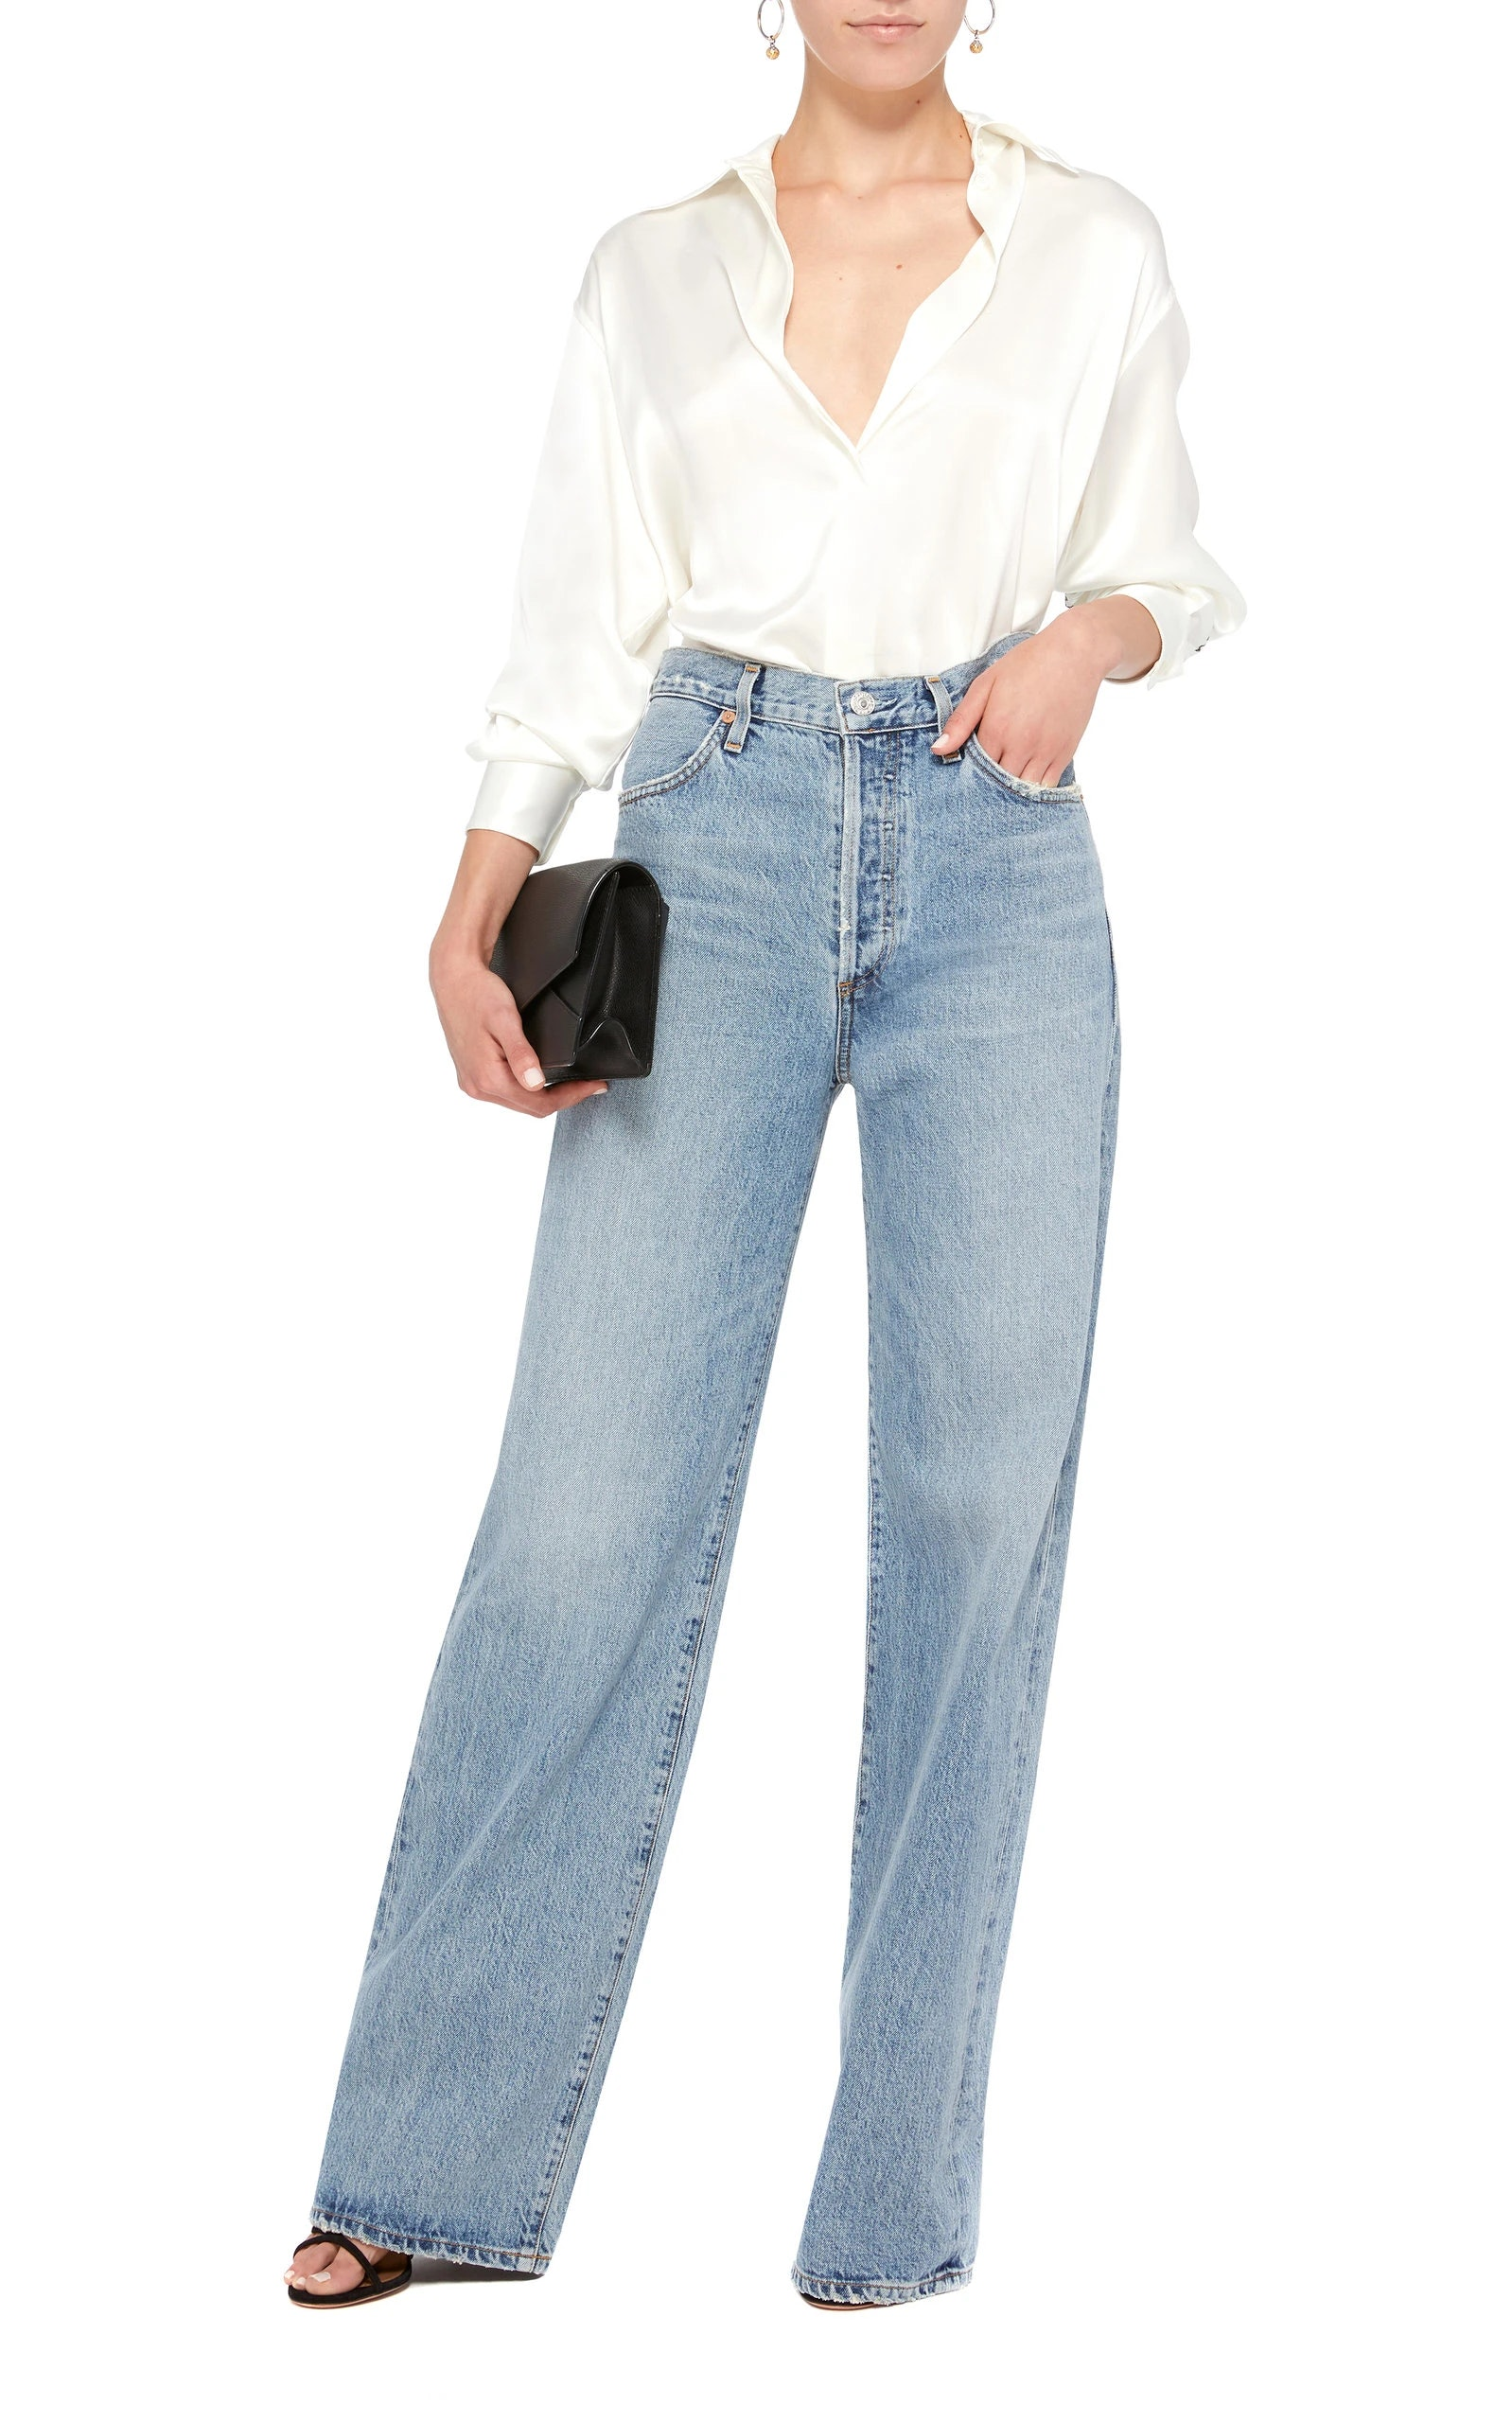 1f7985a0b4 How To Style Baggy Jeans — The Anti-Skinny Jeans Trend Taking Over